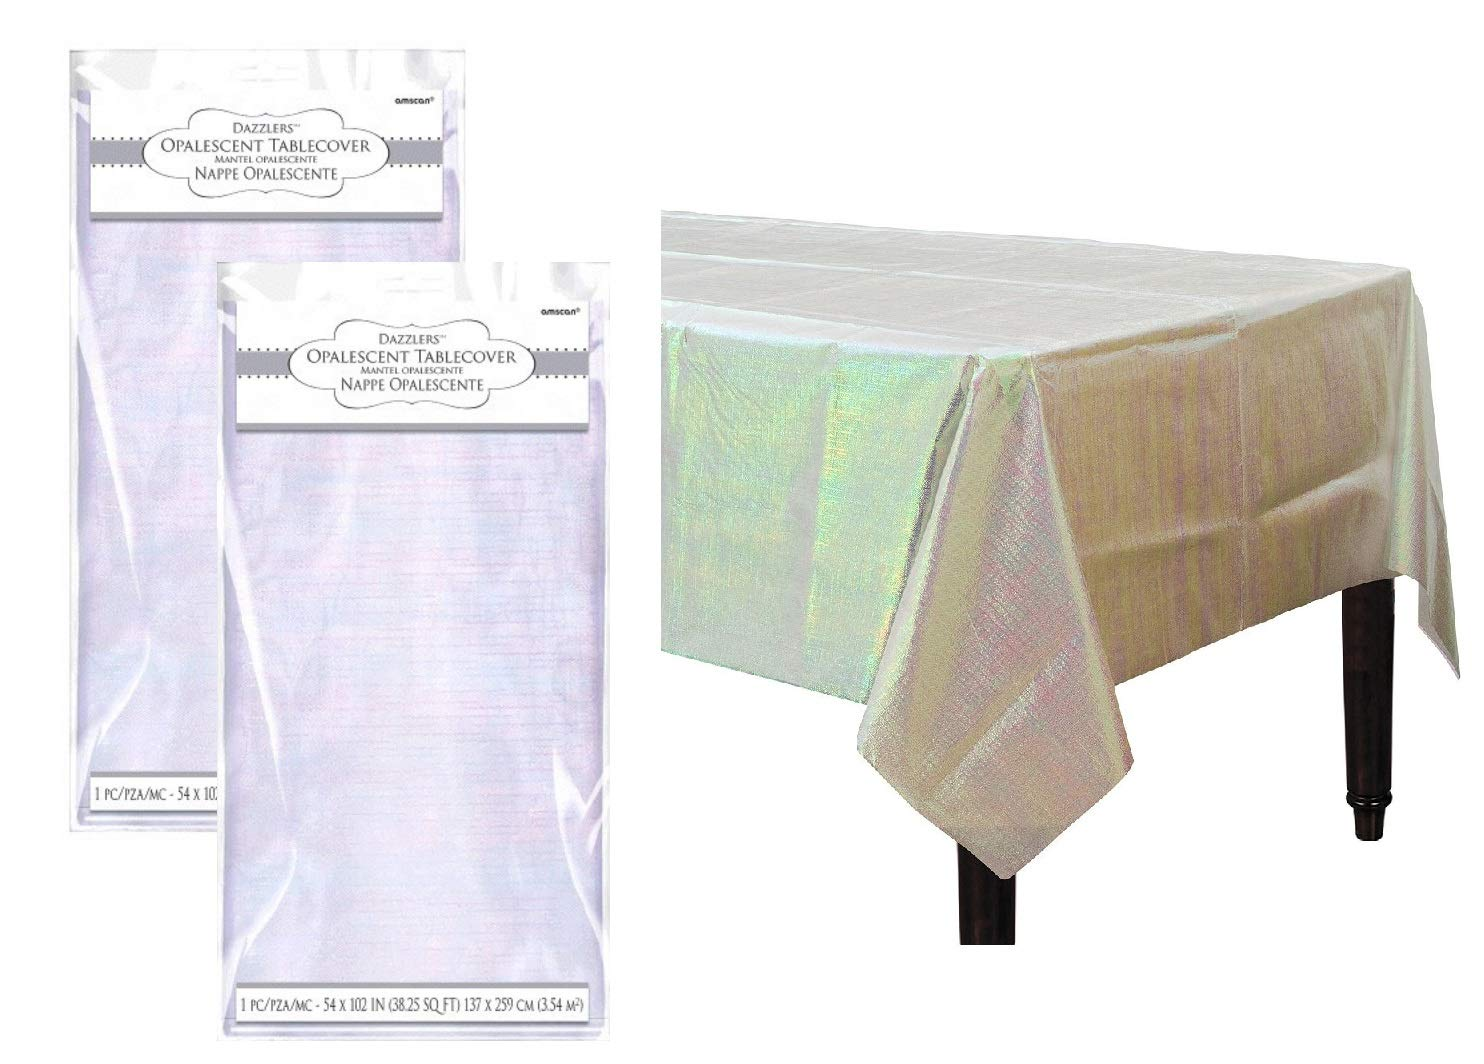 Iridescent Party Decorations Opalescent Shiny Table Covers Pack of 2 by FAKKOS Design